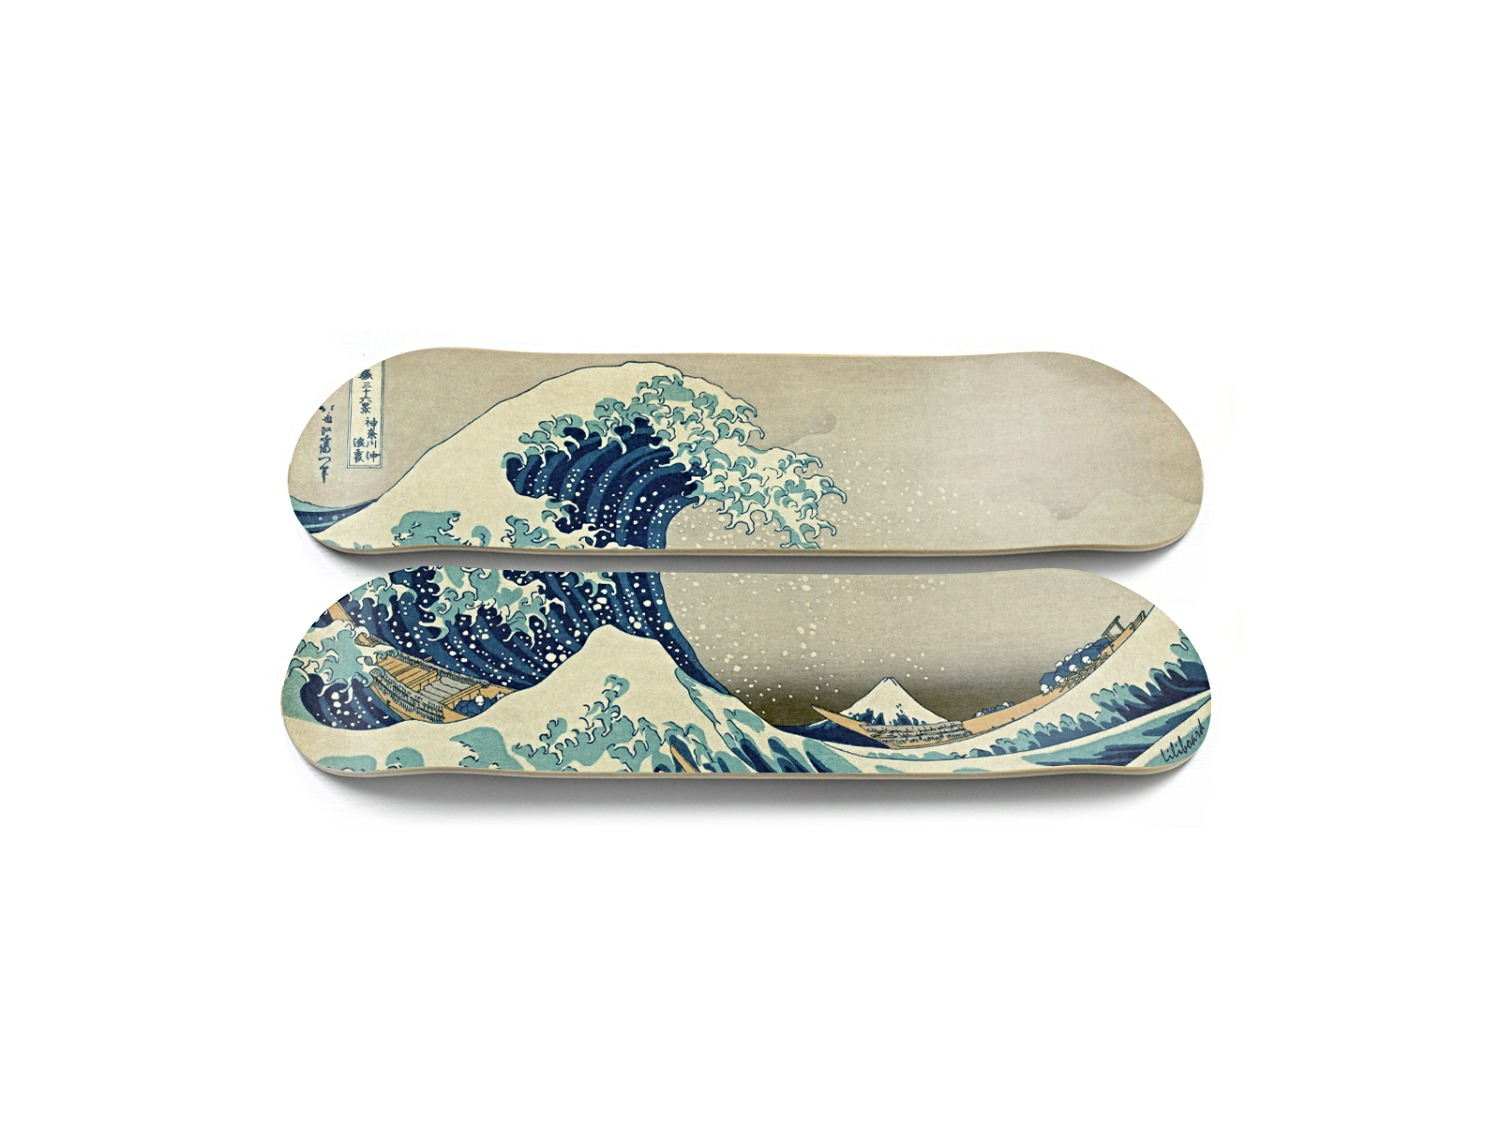 La Vague (Hokusai)